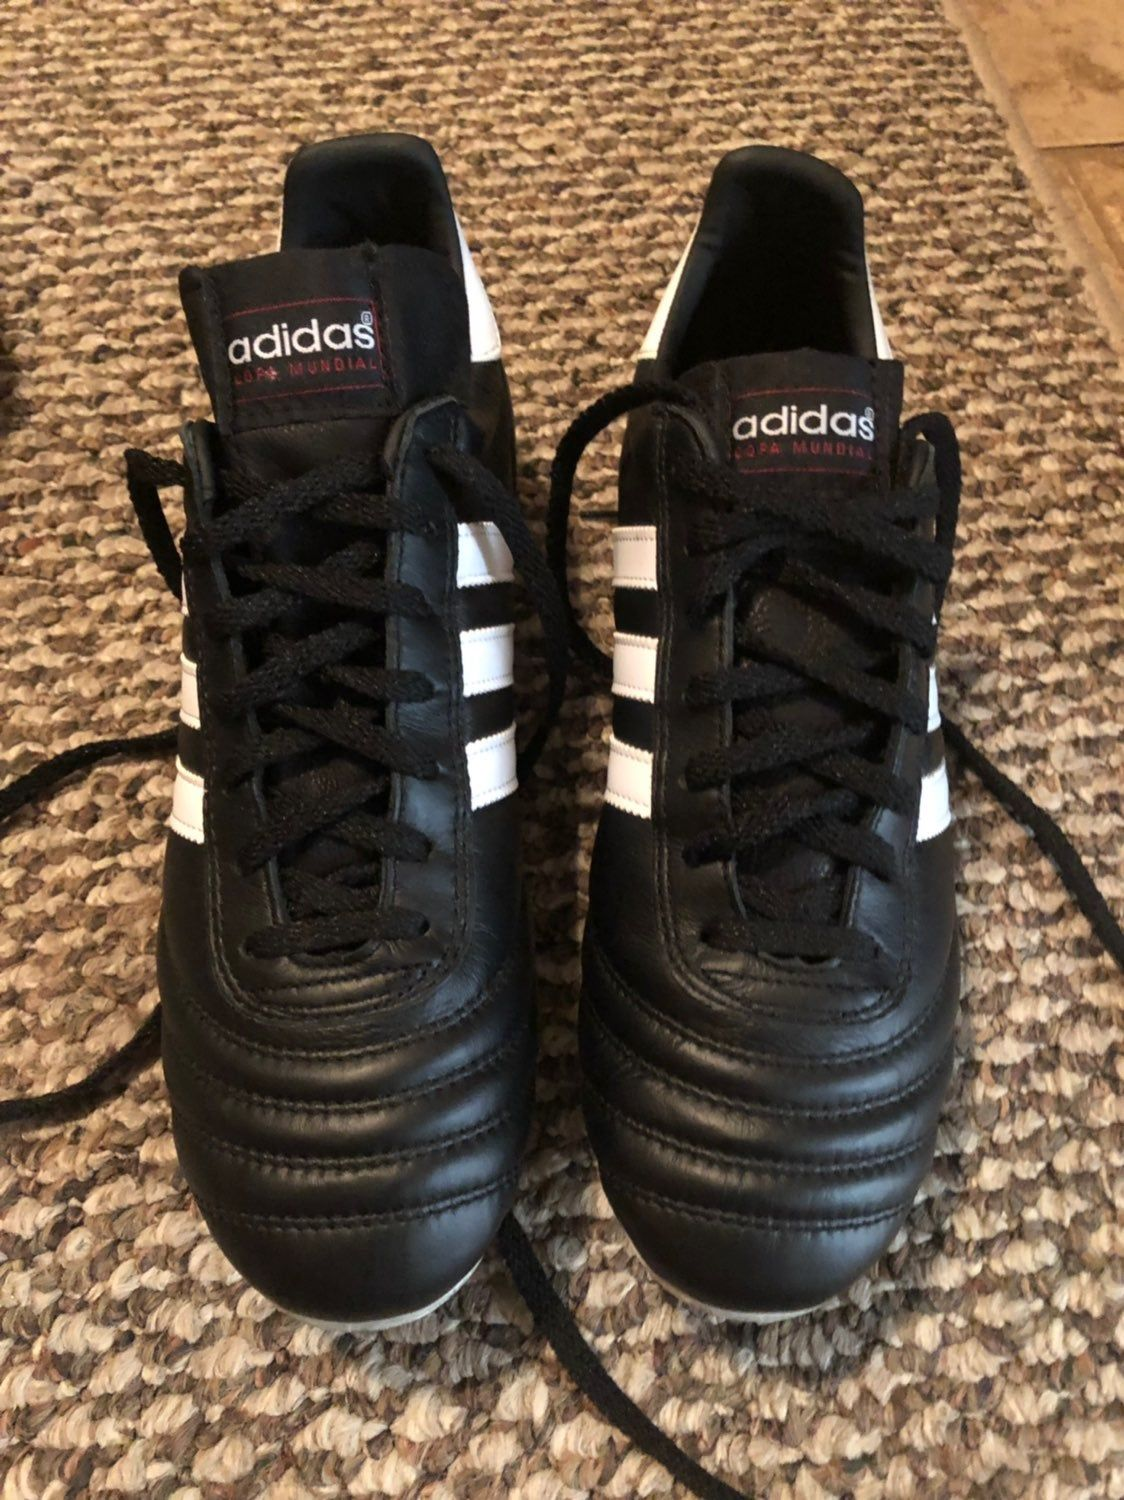 Cleats adidas brand copa mundial model size 75 mens